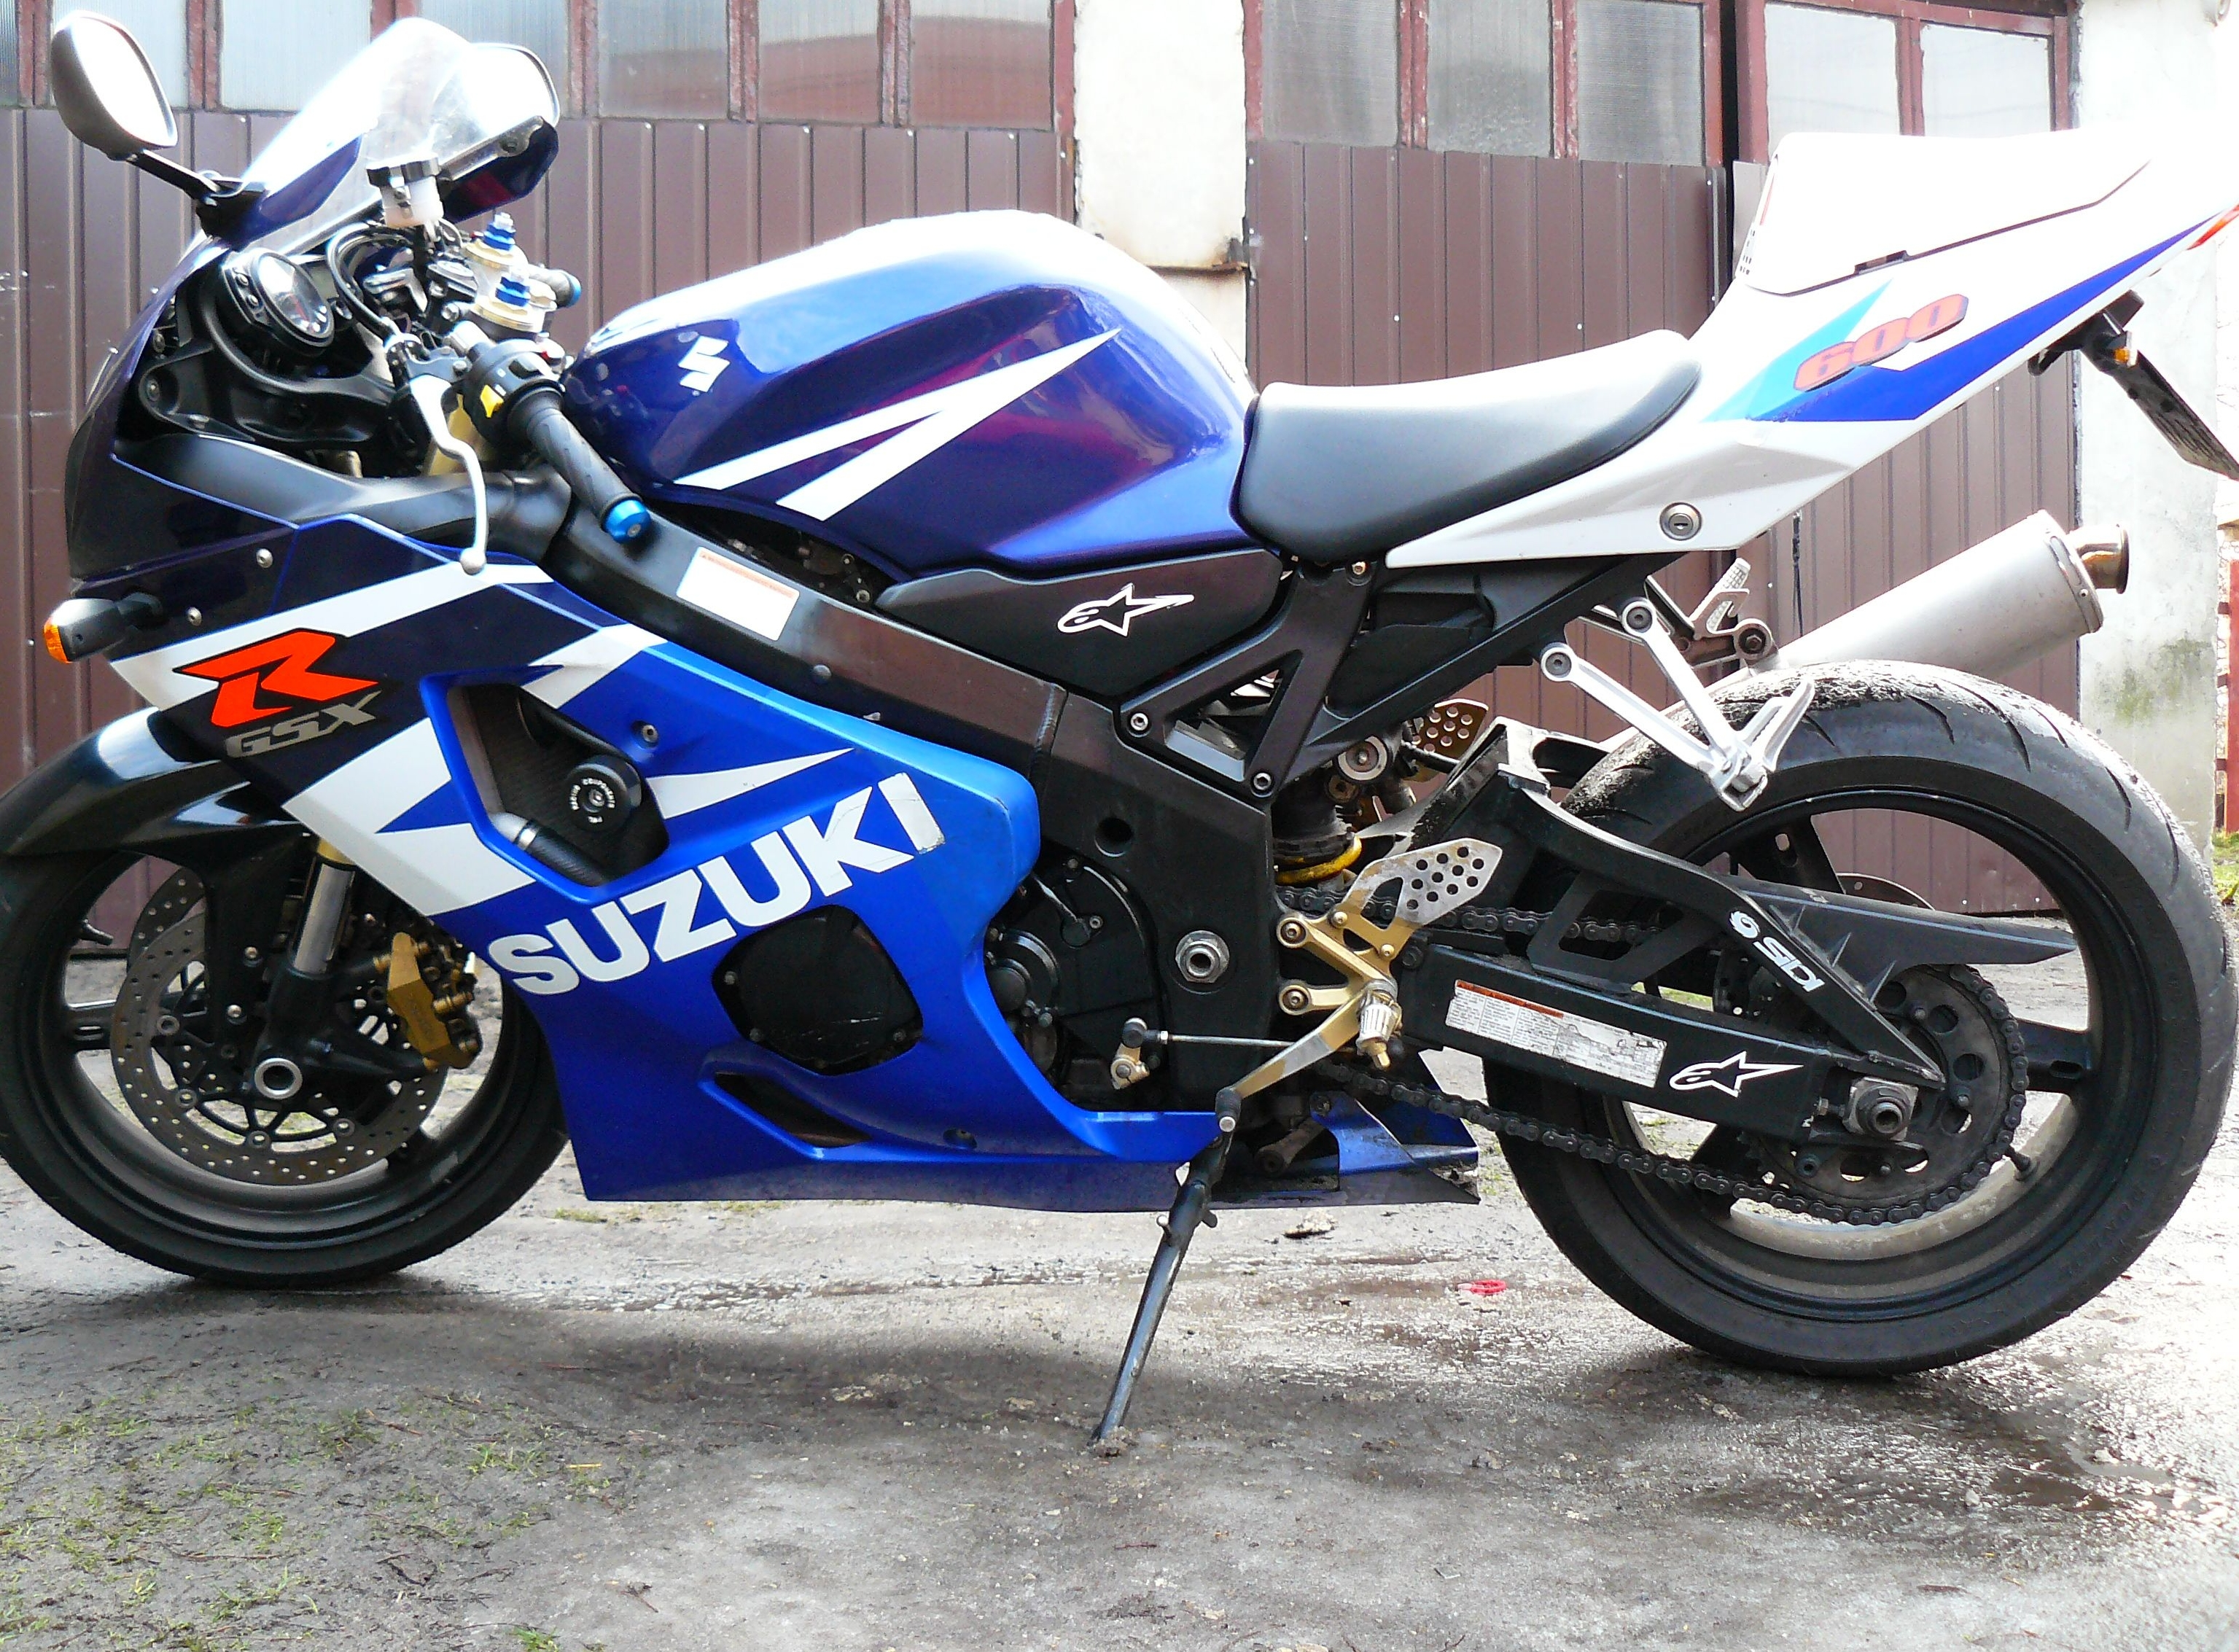 suzuki gsx r 600 pics specs and list of seriess by year. Black Bedroom Furniture Sets. Home Design Ideas